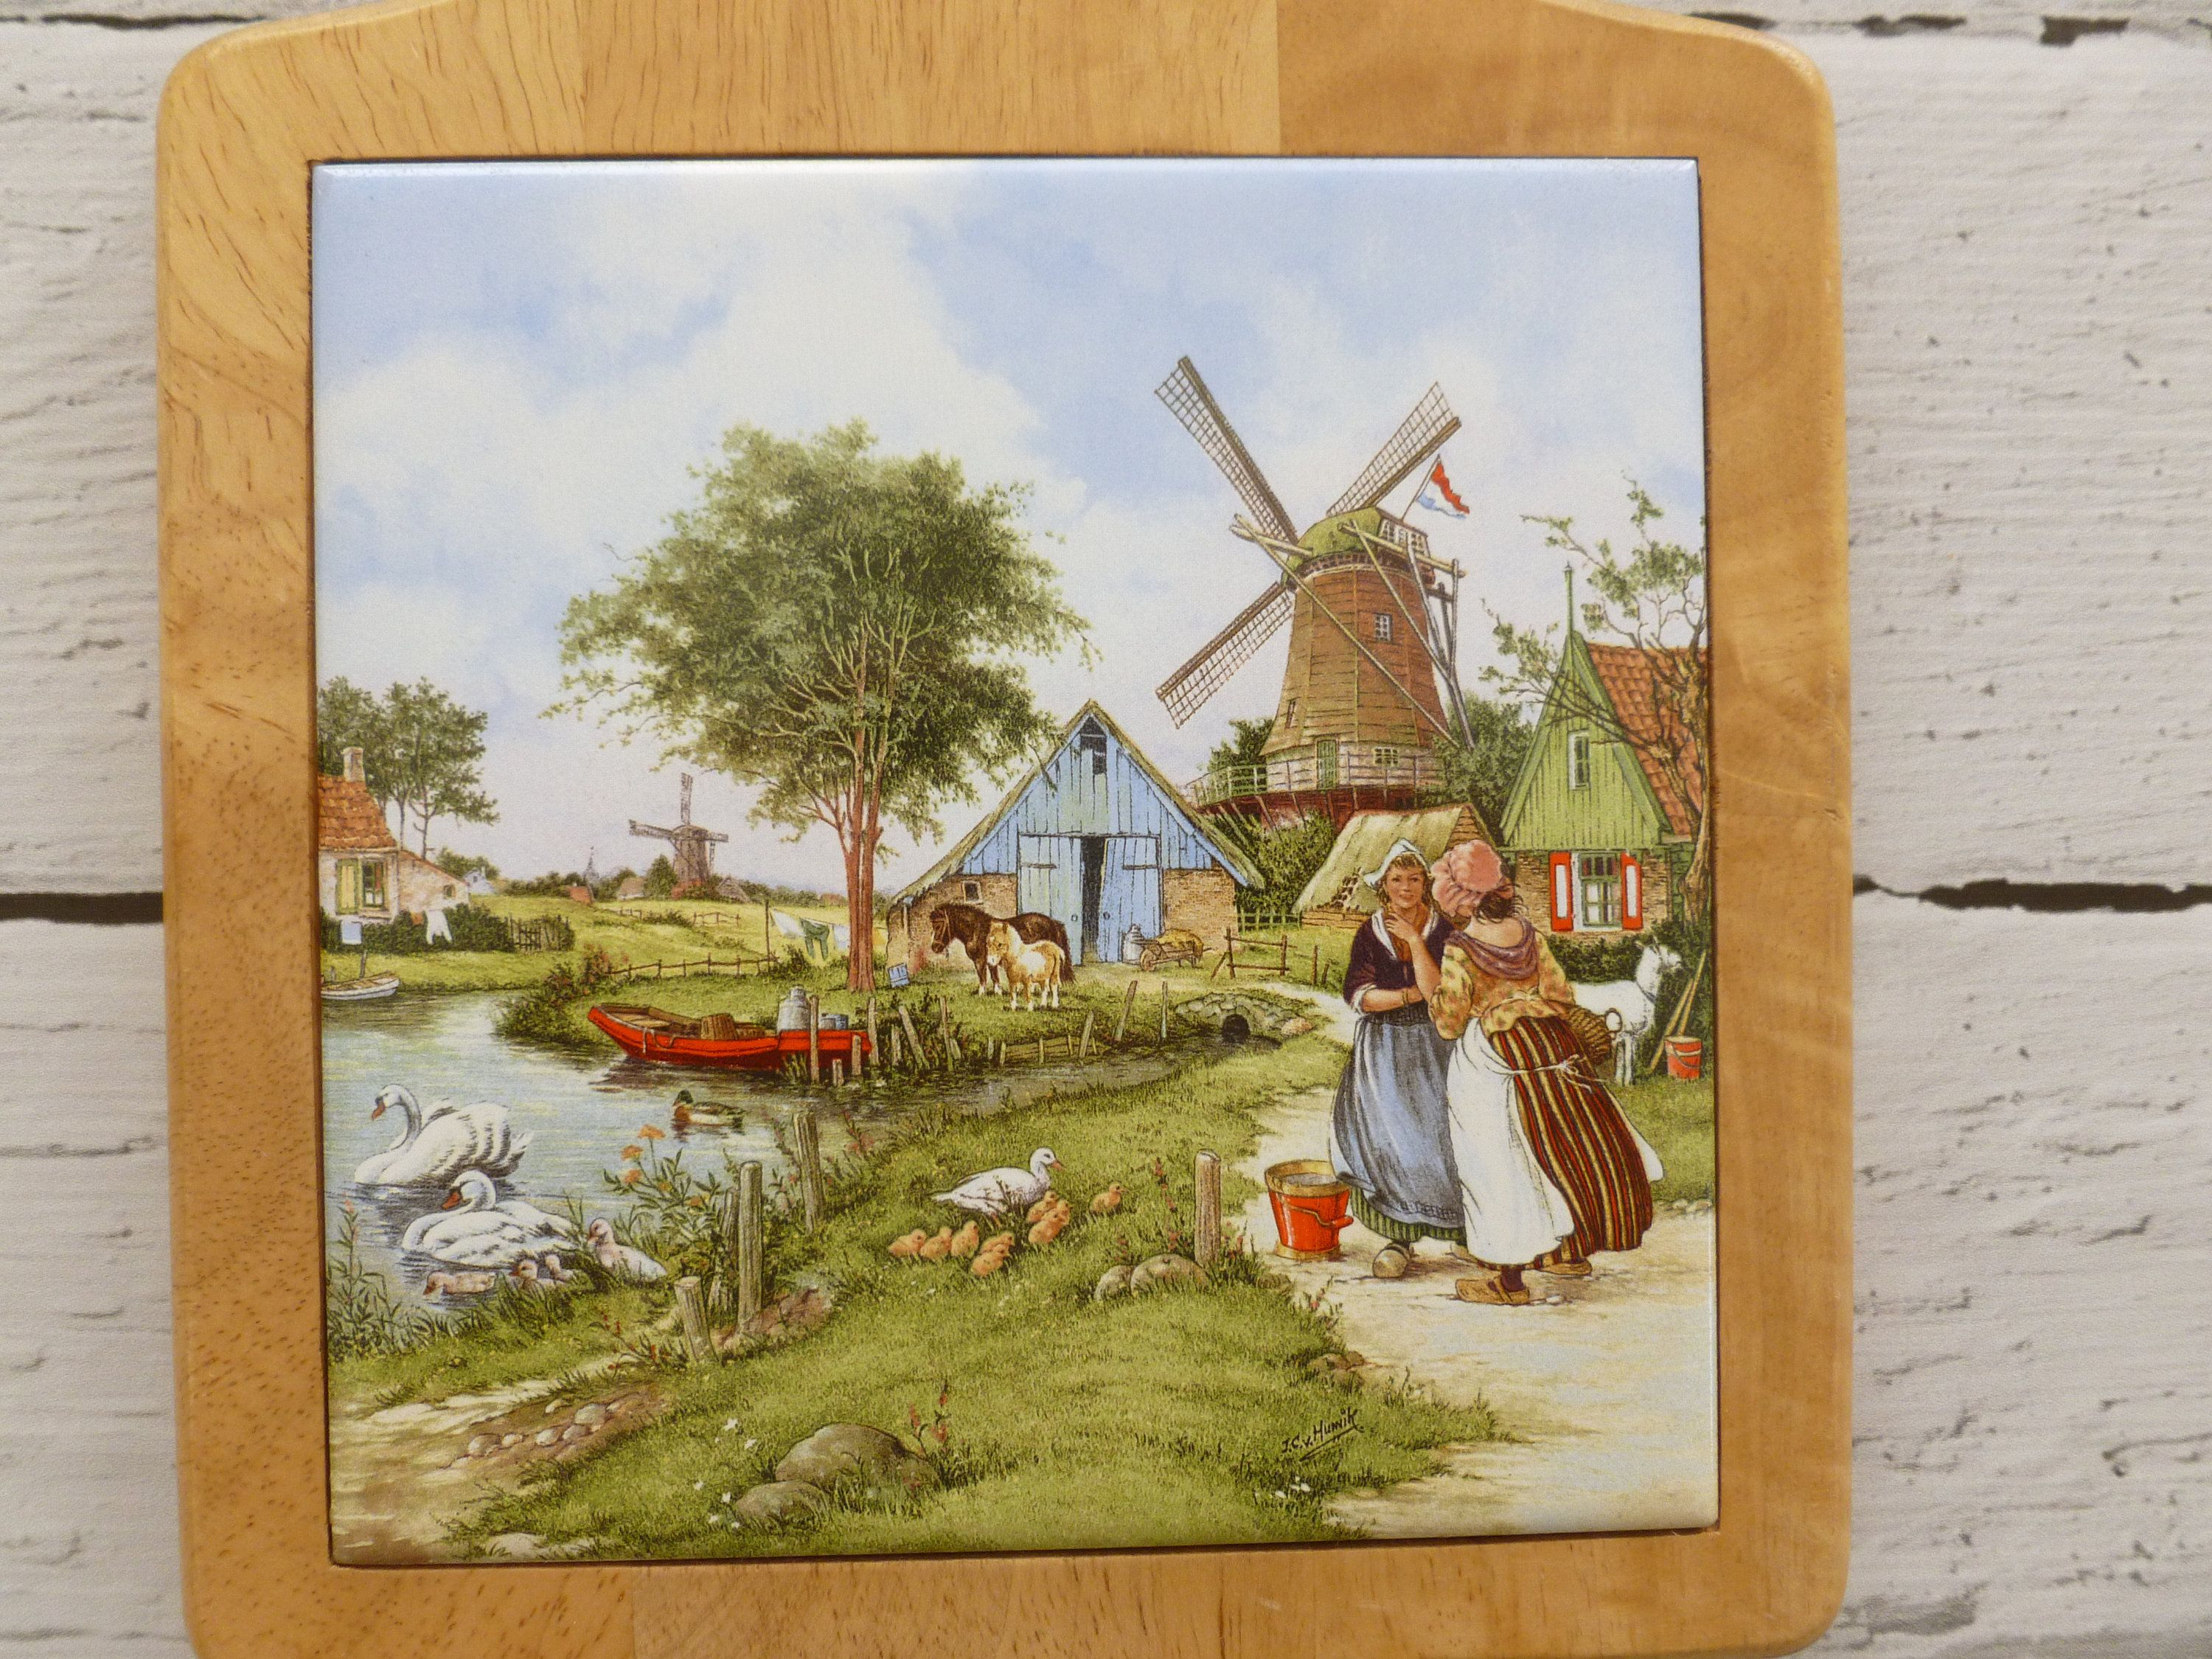 Vintage mid century decorative wooden board ceramic tile inlay vintage mid century decorative wooden board ceramic tile inlay dutch windmill scene vintage decor mid century decor dutch decor wall art dailygadgetfo Image collections